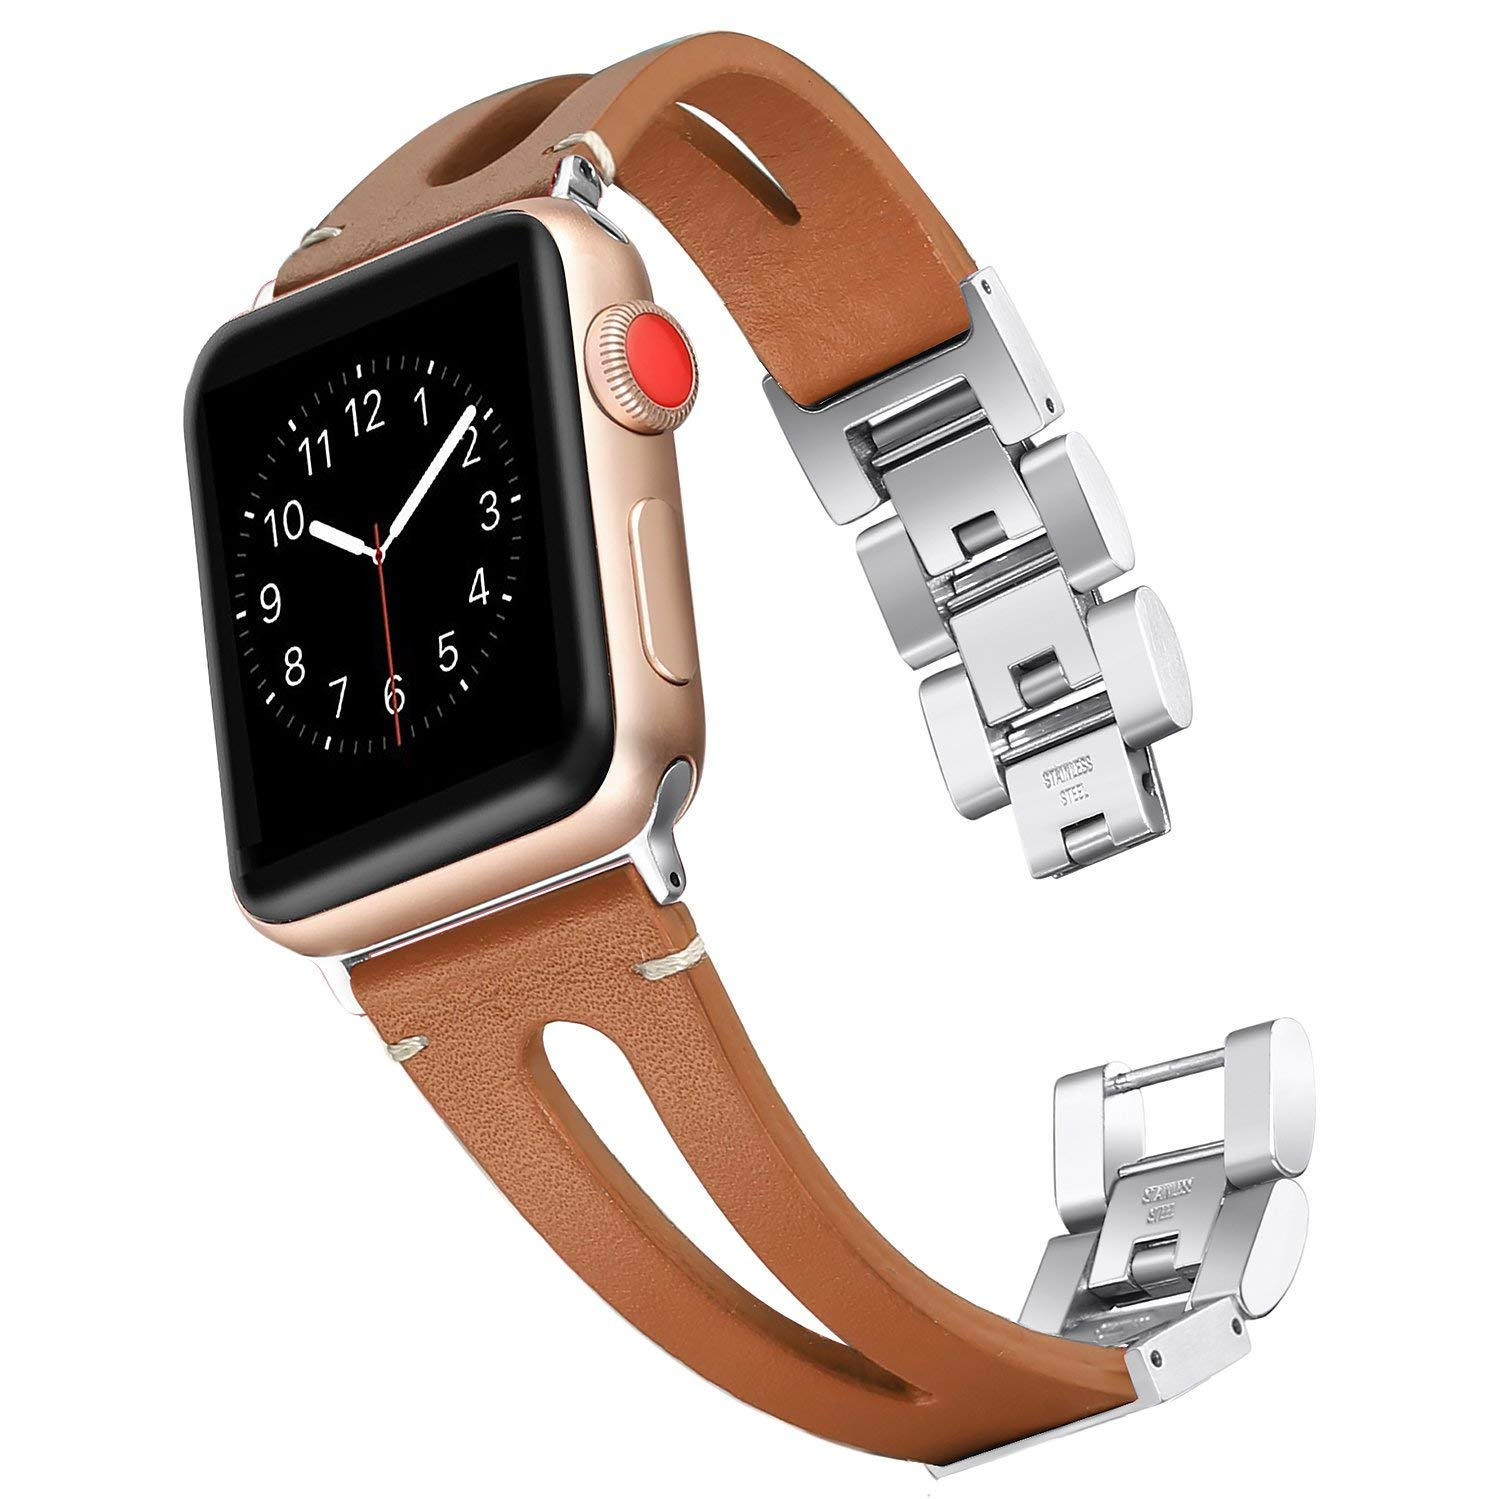 JANSIN Genuine Leather loop band for Apple Watch Bands 38mm 42mm 40mm 44mm Bracelet strap for iWatch Series 5 4 3 2 1 women/Men